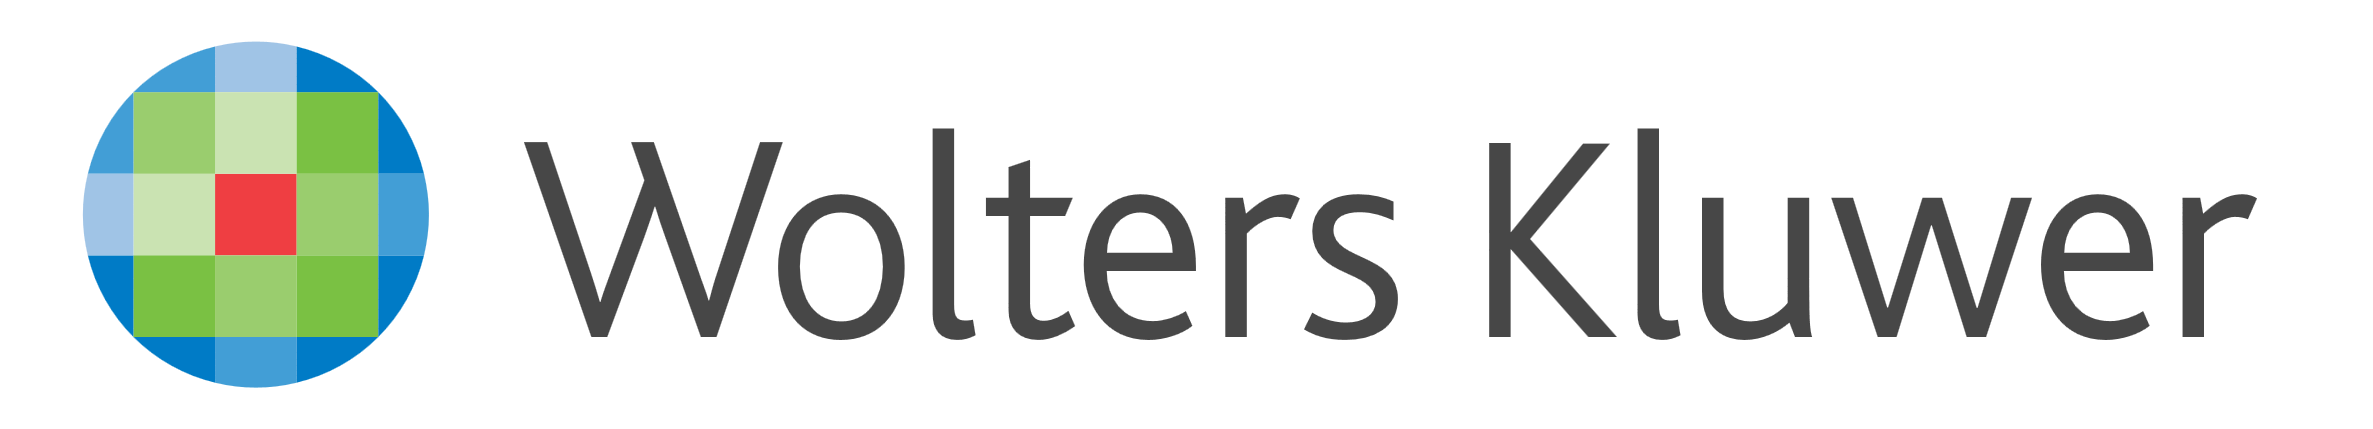 Wolters_Kluwer_logo_logotype.png